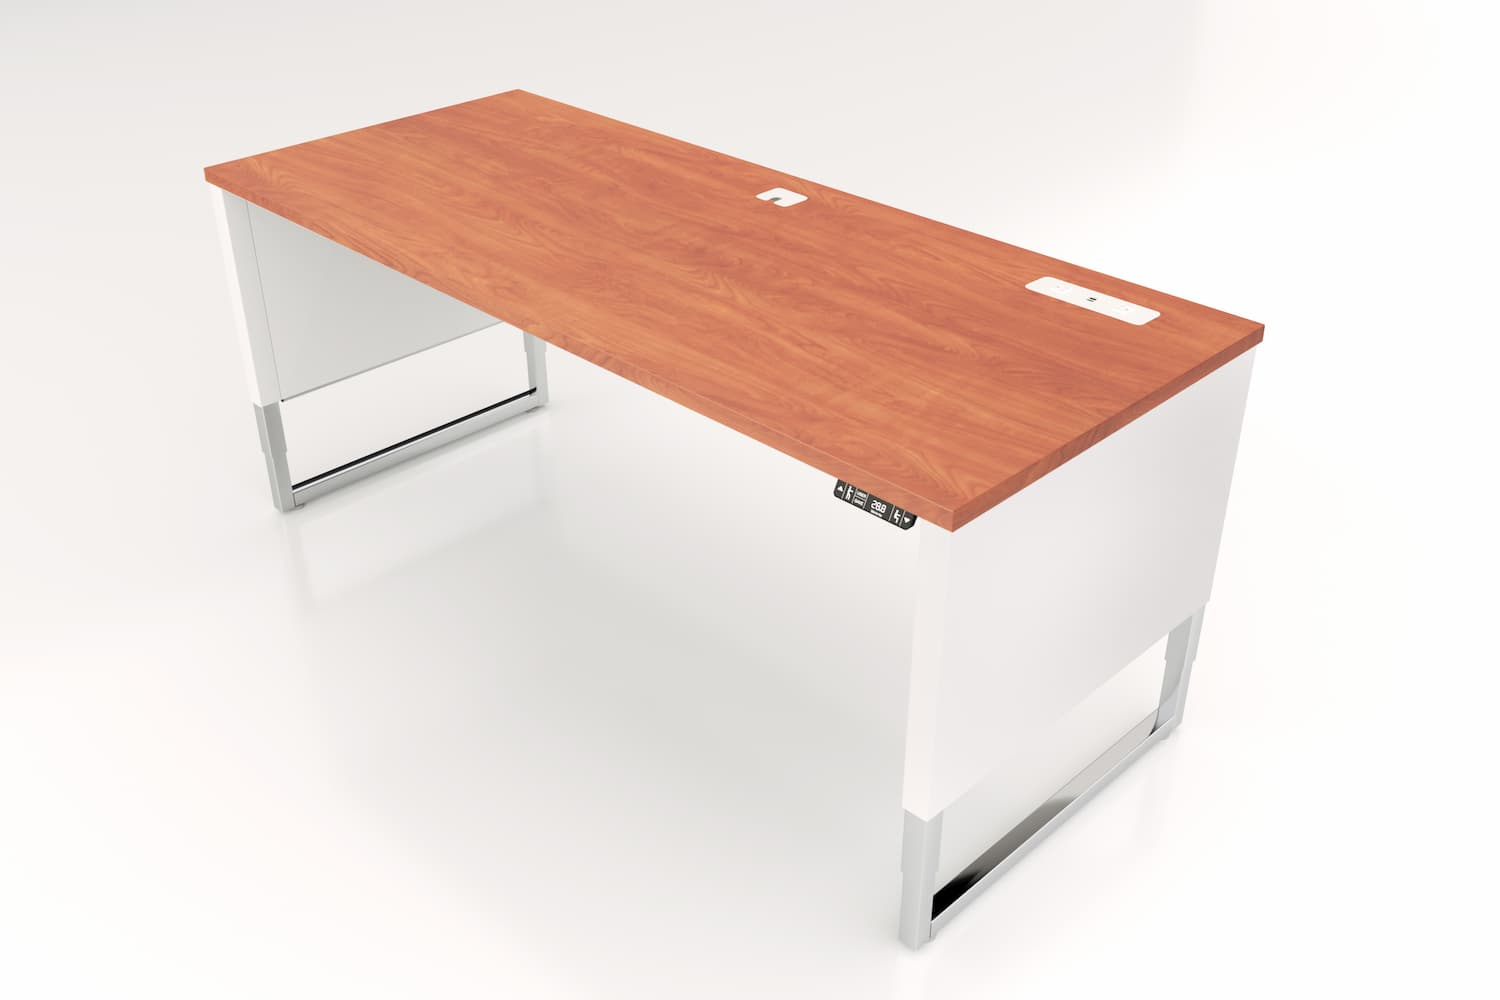 Advent-Desk-ADV-7230-WH-Custom-Top-4